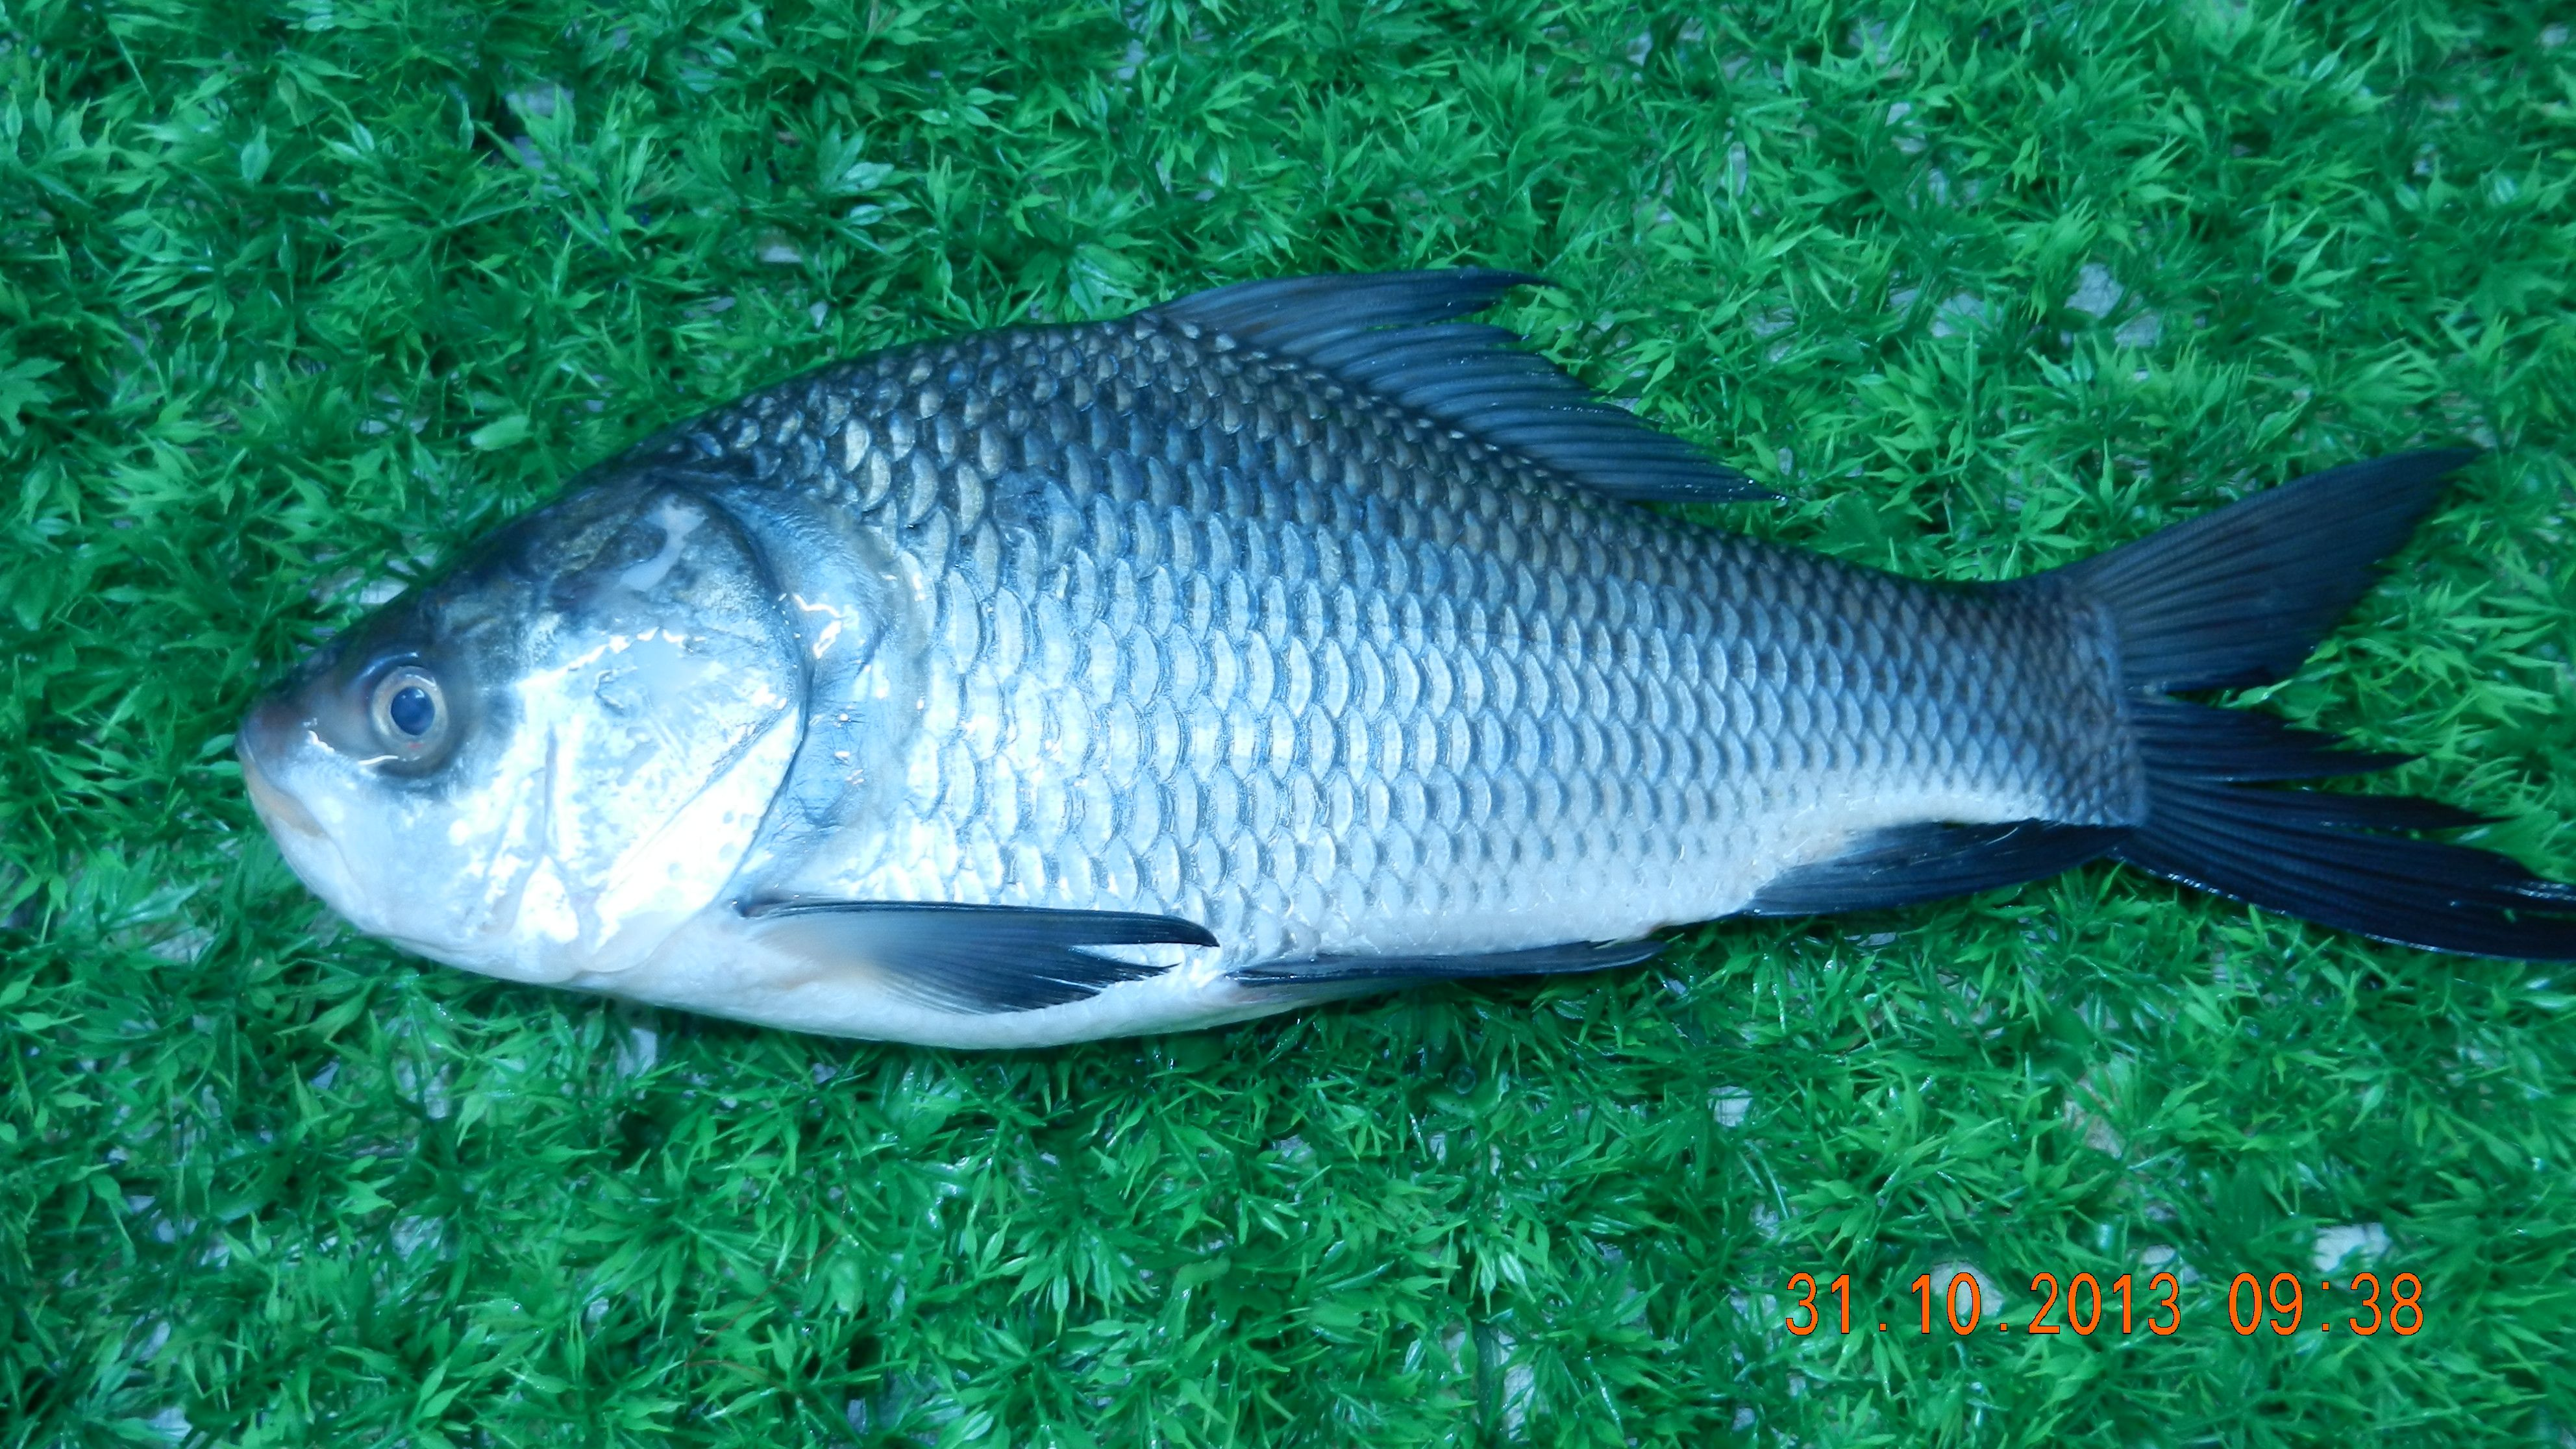 Katla Fish Available At Supreme Seafood For Home Delivery In Chennai Visit Us At Www Supremeseafood In Fish Seafood Delivery Seafood